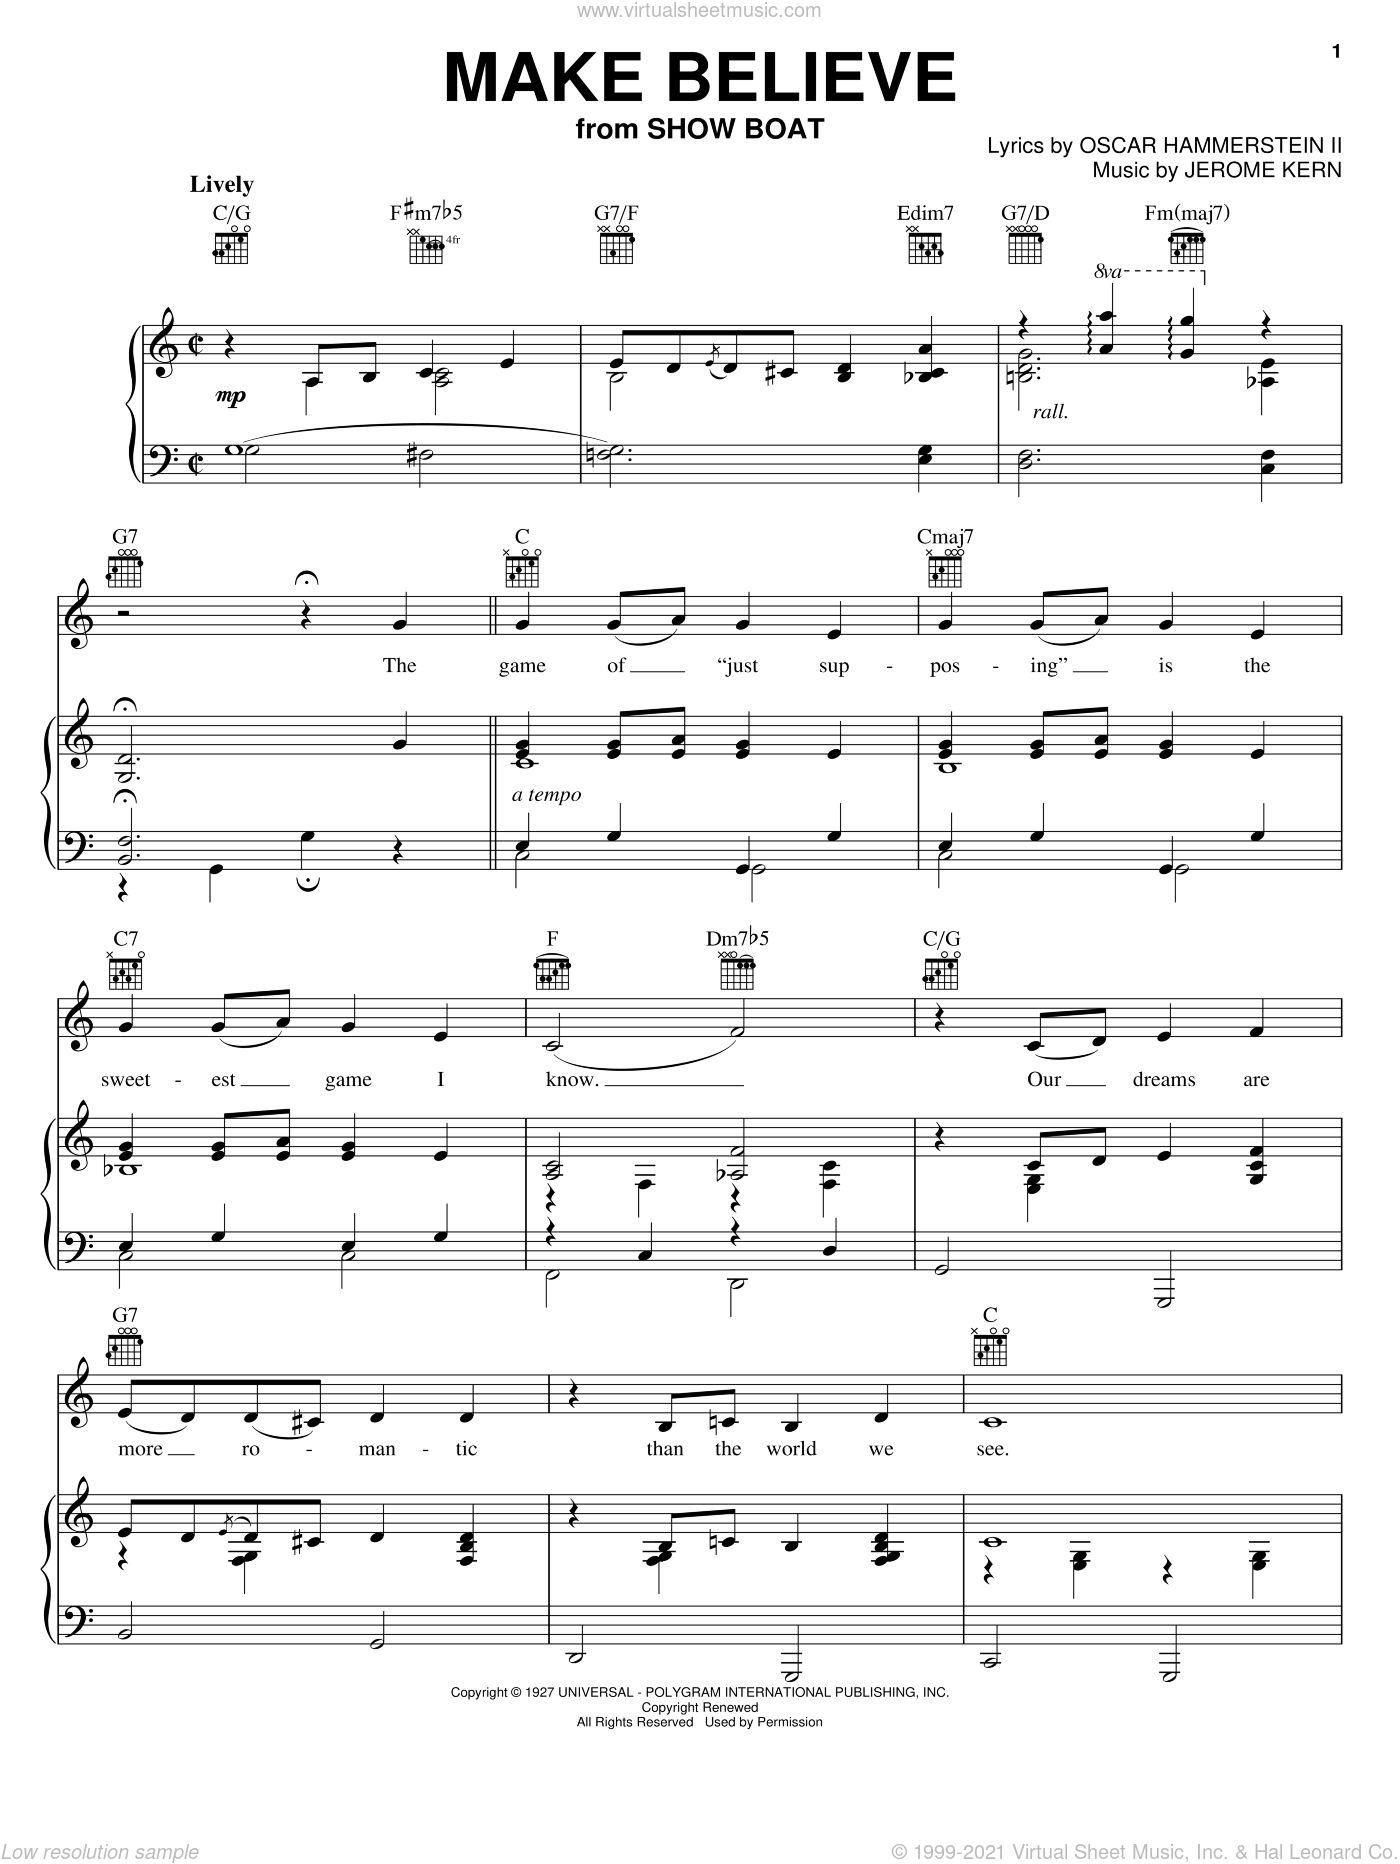 Make Believe sheet music for voice, piano or guitar by Oscar II Hammerstein